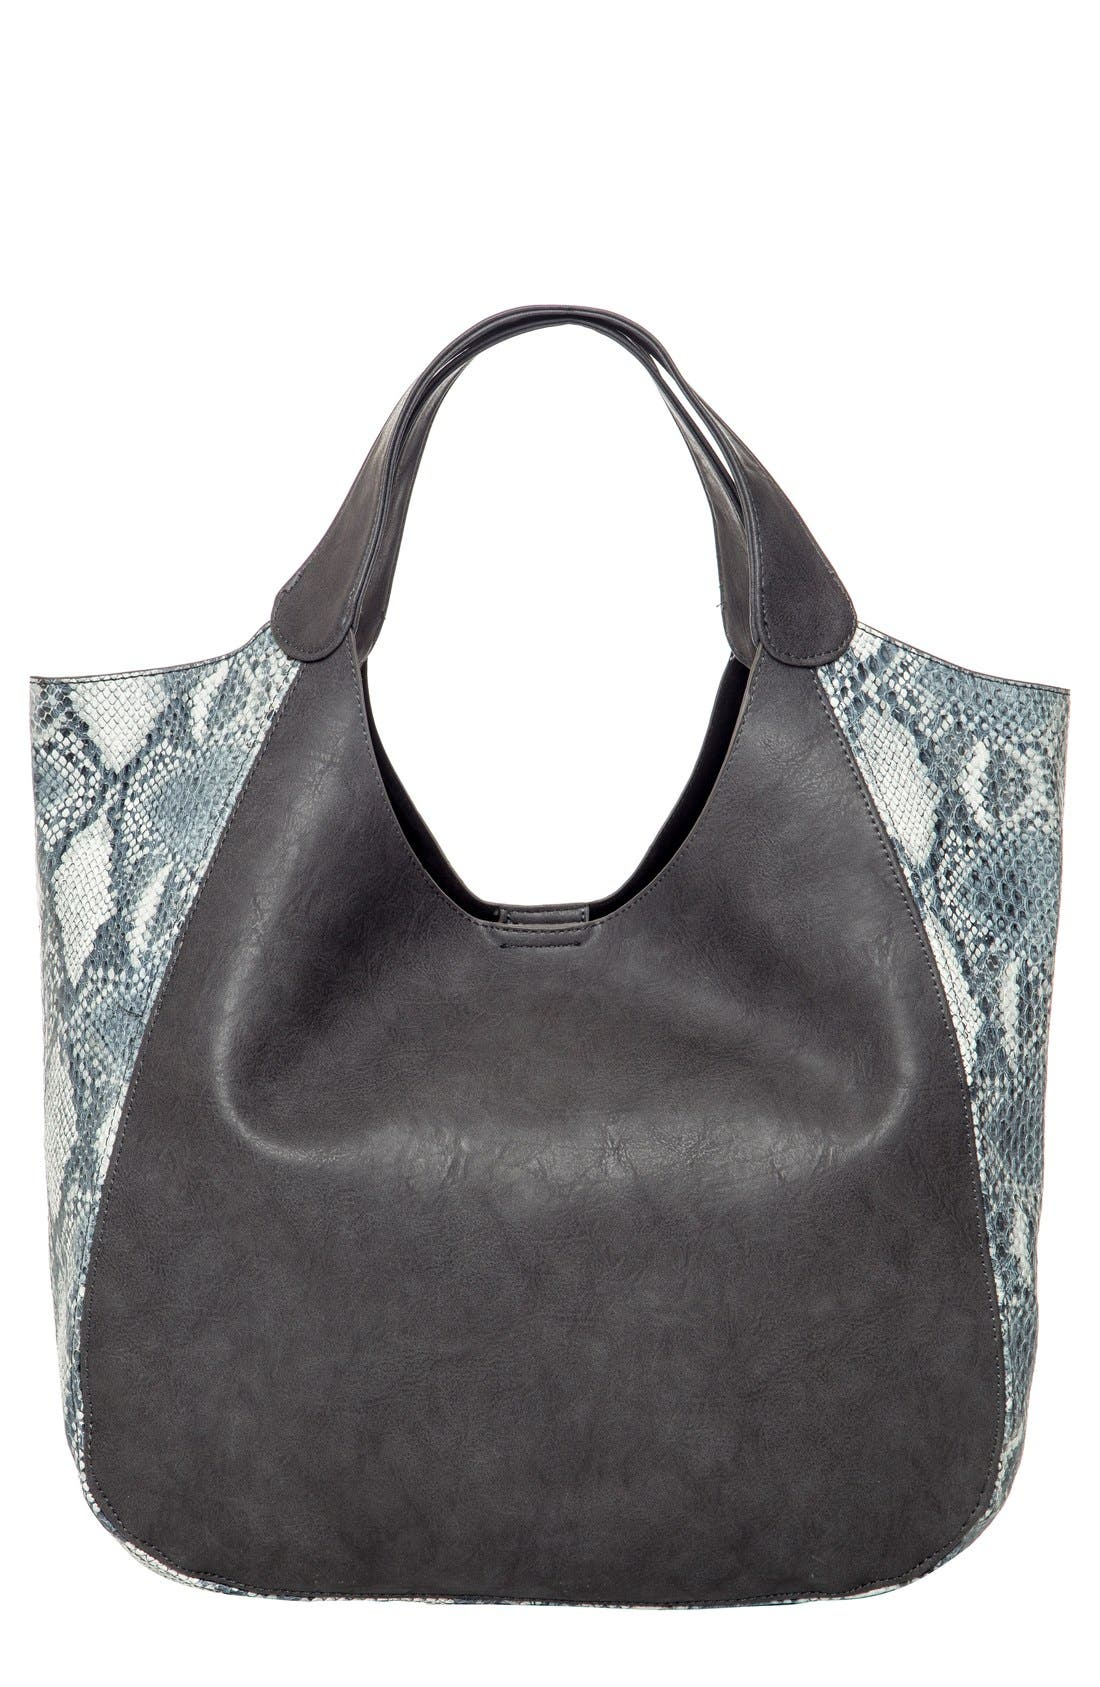 Masterpiece Vegan Leather Tote,                             Main thumbnail 1, color,                             STEEL